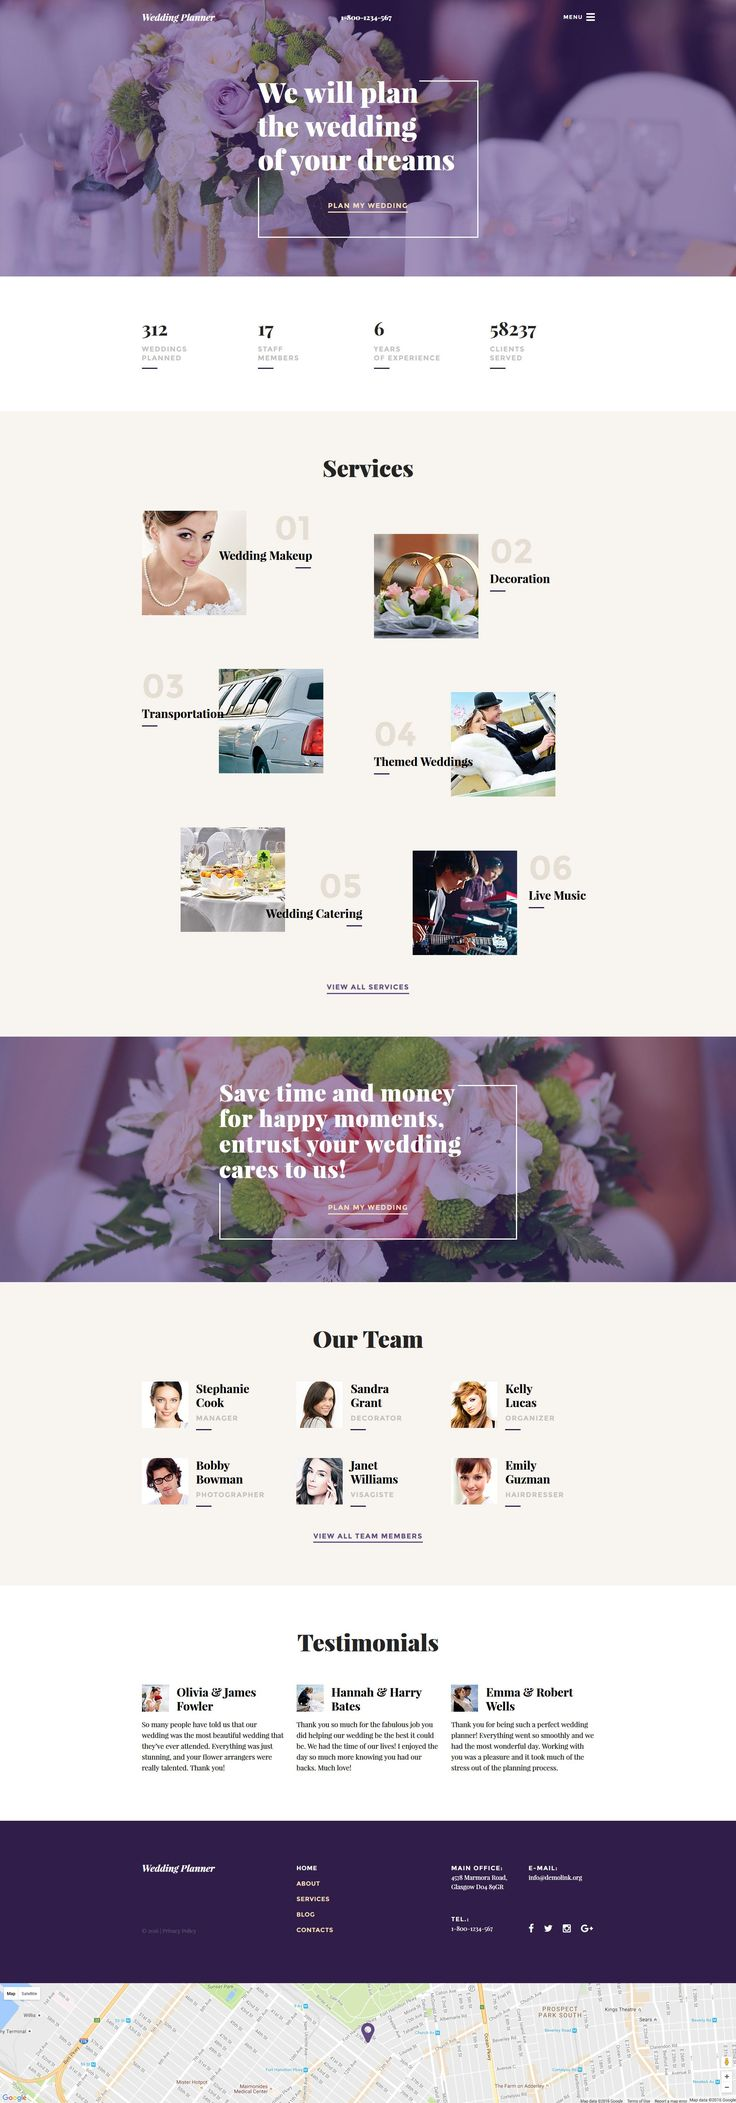 Wedding Planner Responsive Website Template - http://www.templatemonster.com/website-templates/wedding-planner-responsive-website-template-58268.html